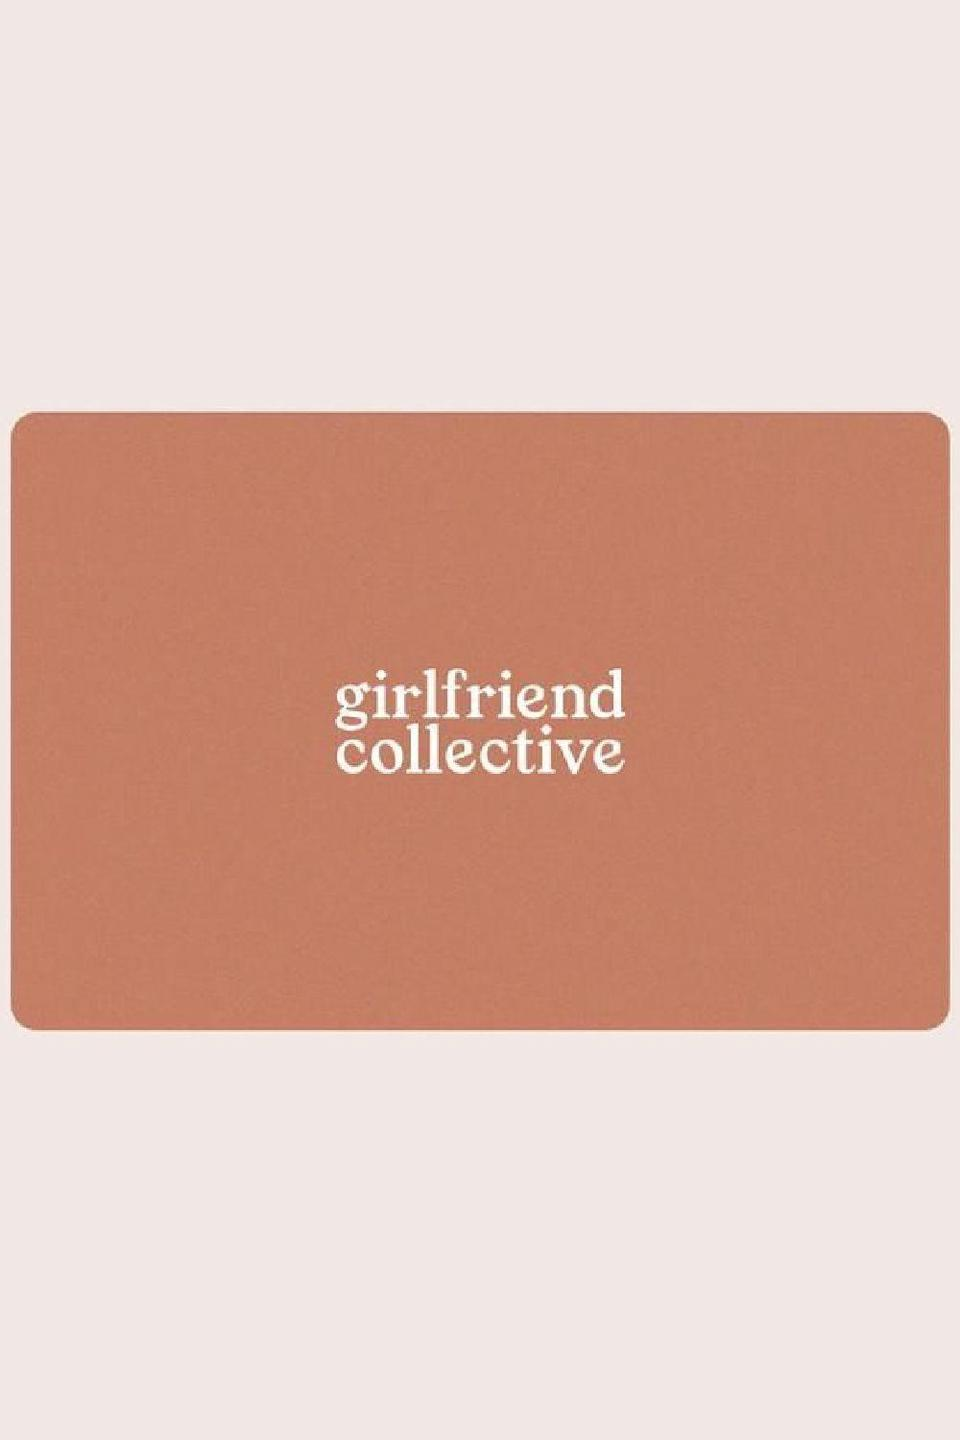 """<p><strong>Girlfriend Collective</strong></p><p>girlfriend.com</p><p><a href=""""https://go.redirectingat.com?id=74968X1596630&url=https%3A%2F%2Fwww.girlfriend.com%2Fproducts%2Fe-giftcard%3F_pos%3D1%26_sid%3D9b2f2b47f%26_ss%3Dr&sref=https%3A%2F%2Fwww.cosmopolitan.com%2Fstyle-beauty%2Ffashion%2Fg34229001%2Fbest-gift-card-ideas-to-give%2F"""" rel=""""nofollow noopener"""" target=""""_blank"""" data-ylk=""""slk:Shop Now"""" class=""""link rapid-noclick-resp"""">Shop Now</a></p><p>If the person you're shopping for lives in leggings, they need a pair of these cult-favorite ones, which, BTW, are made out of recycled water bottles. And if leggings aren't their thing, they can shop from a range of sustainable lounge and workout wear so they can feel good about their purchases and feel good while wearing them.</p>"""